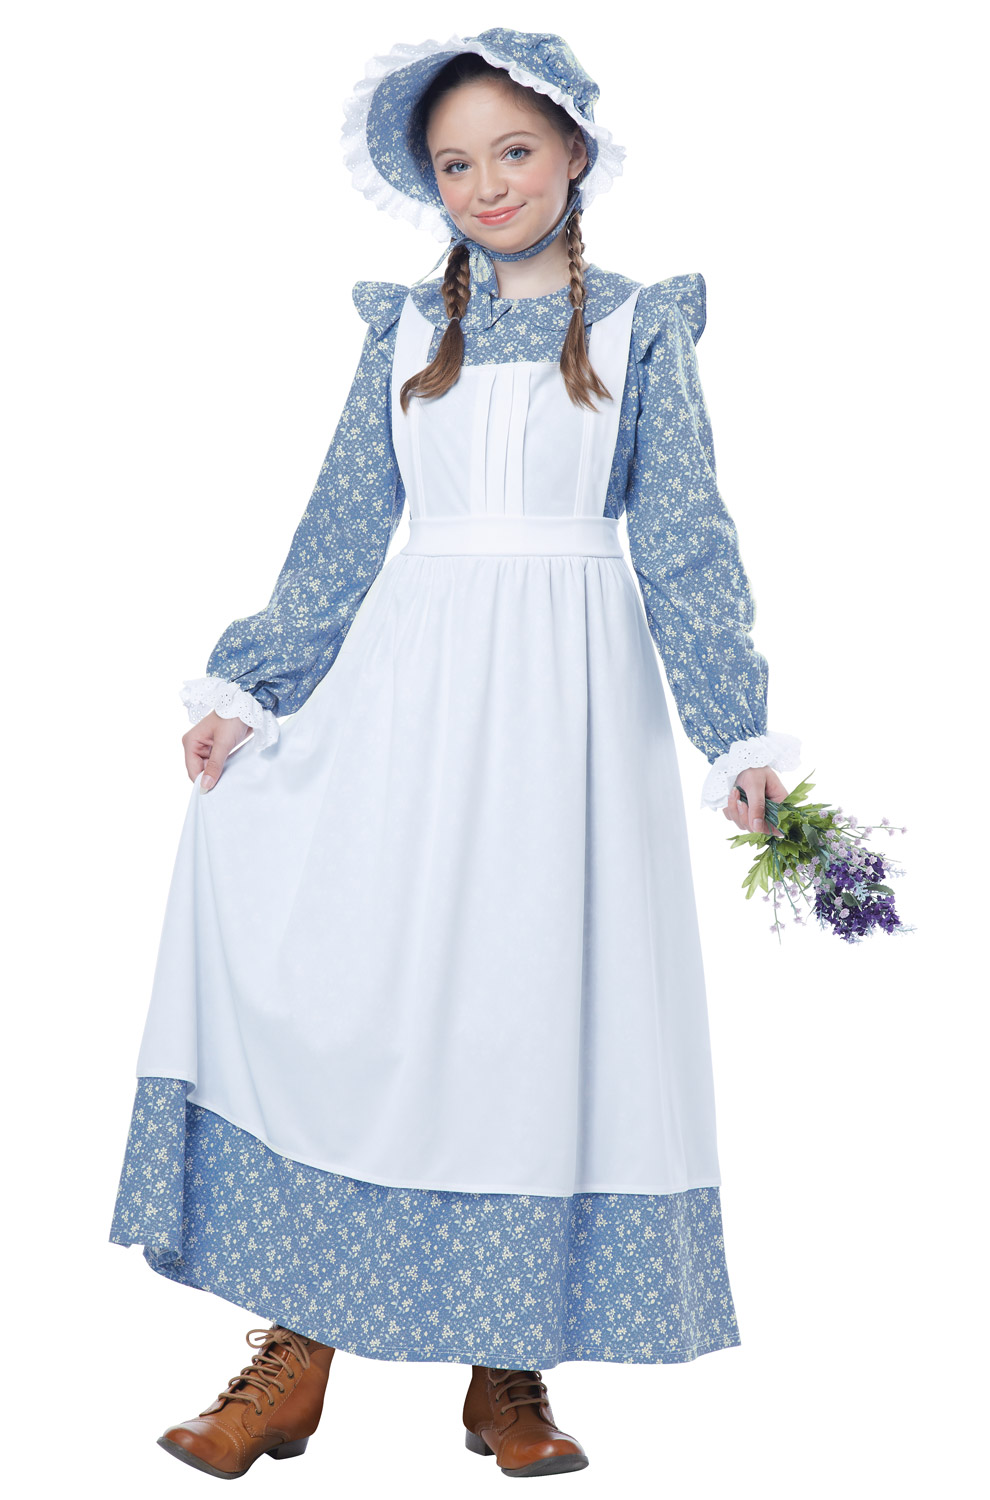 Colonial Pioneer Girl Outfit Child Costume | eBay